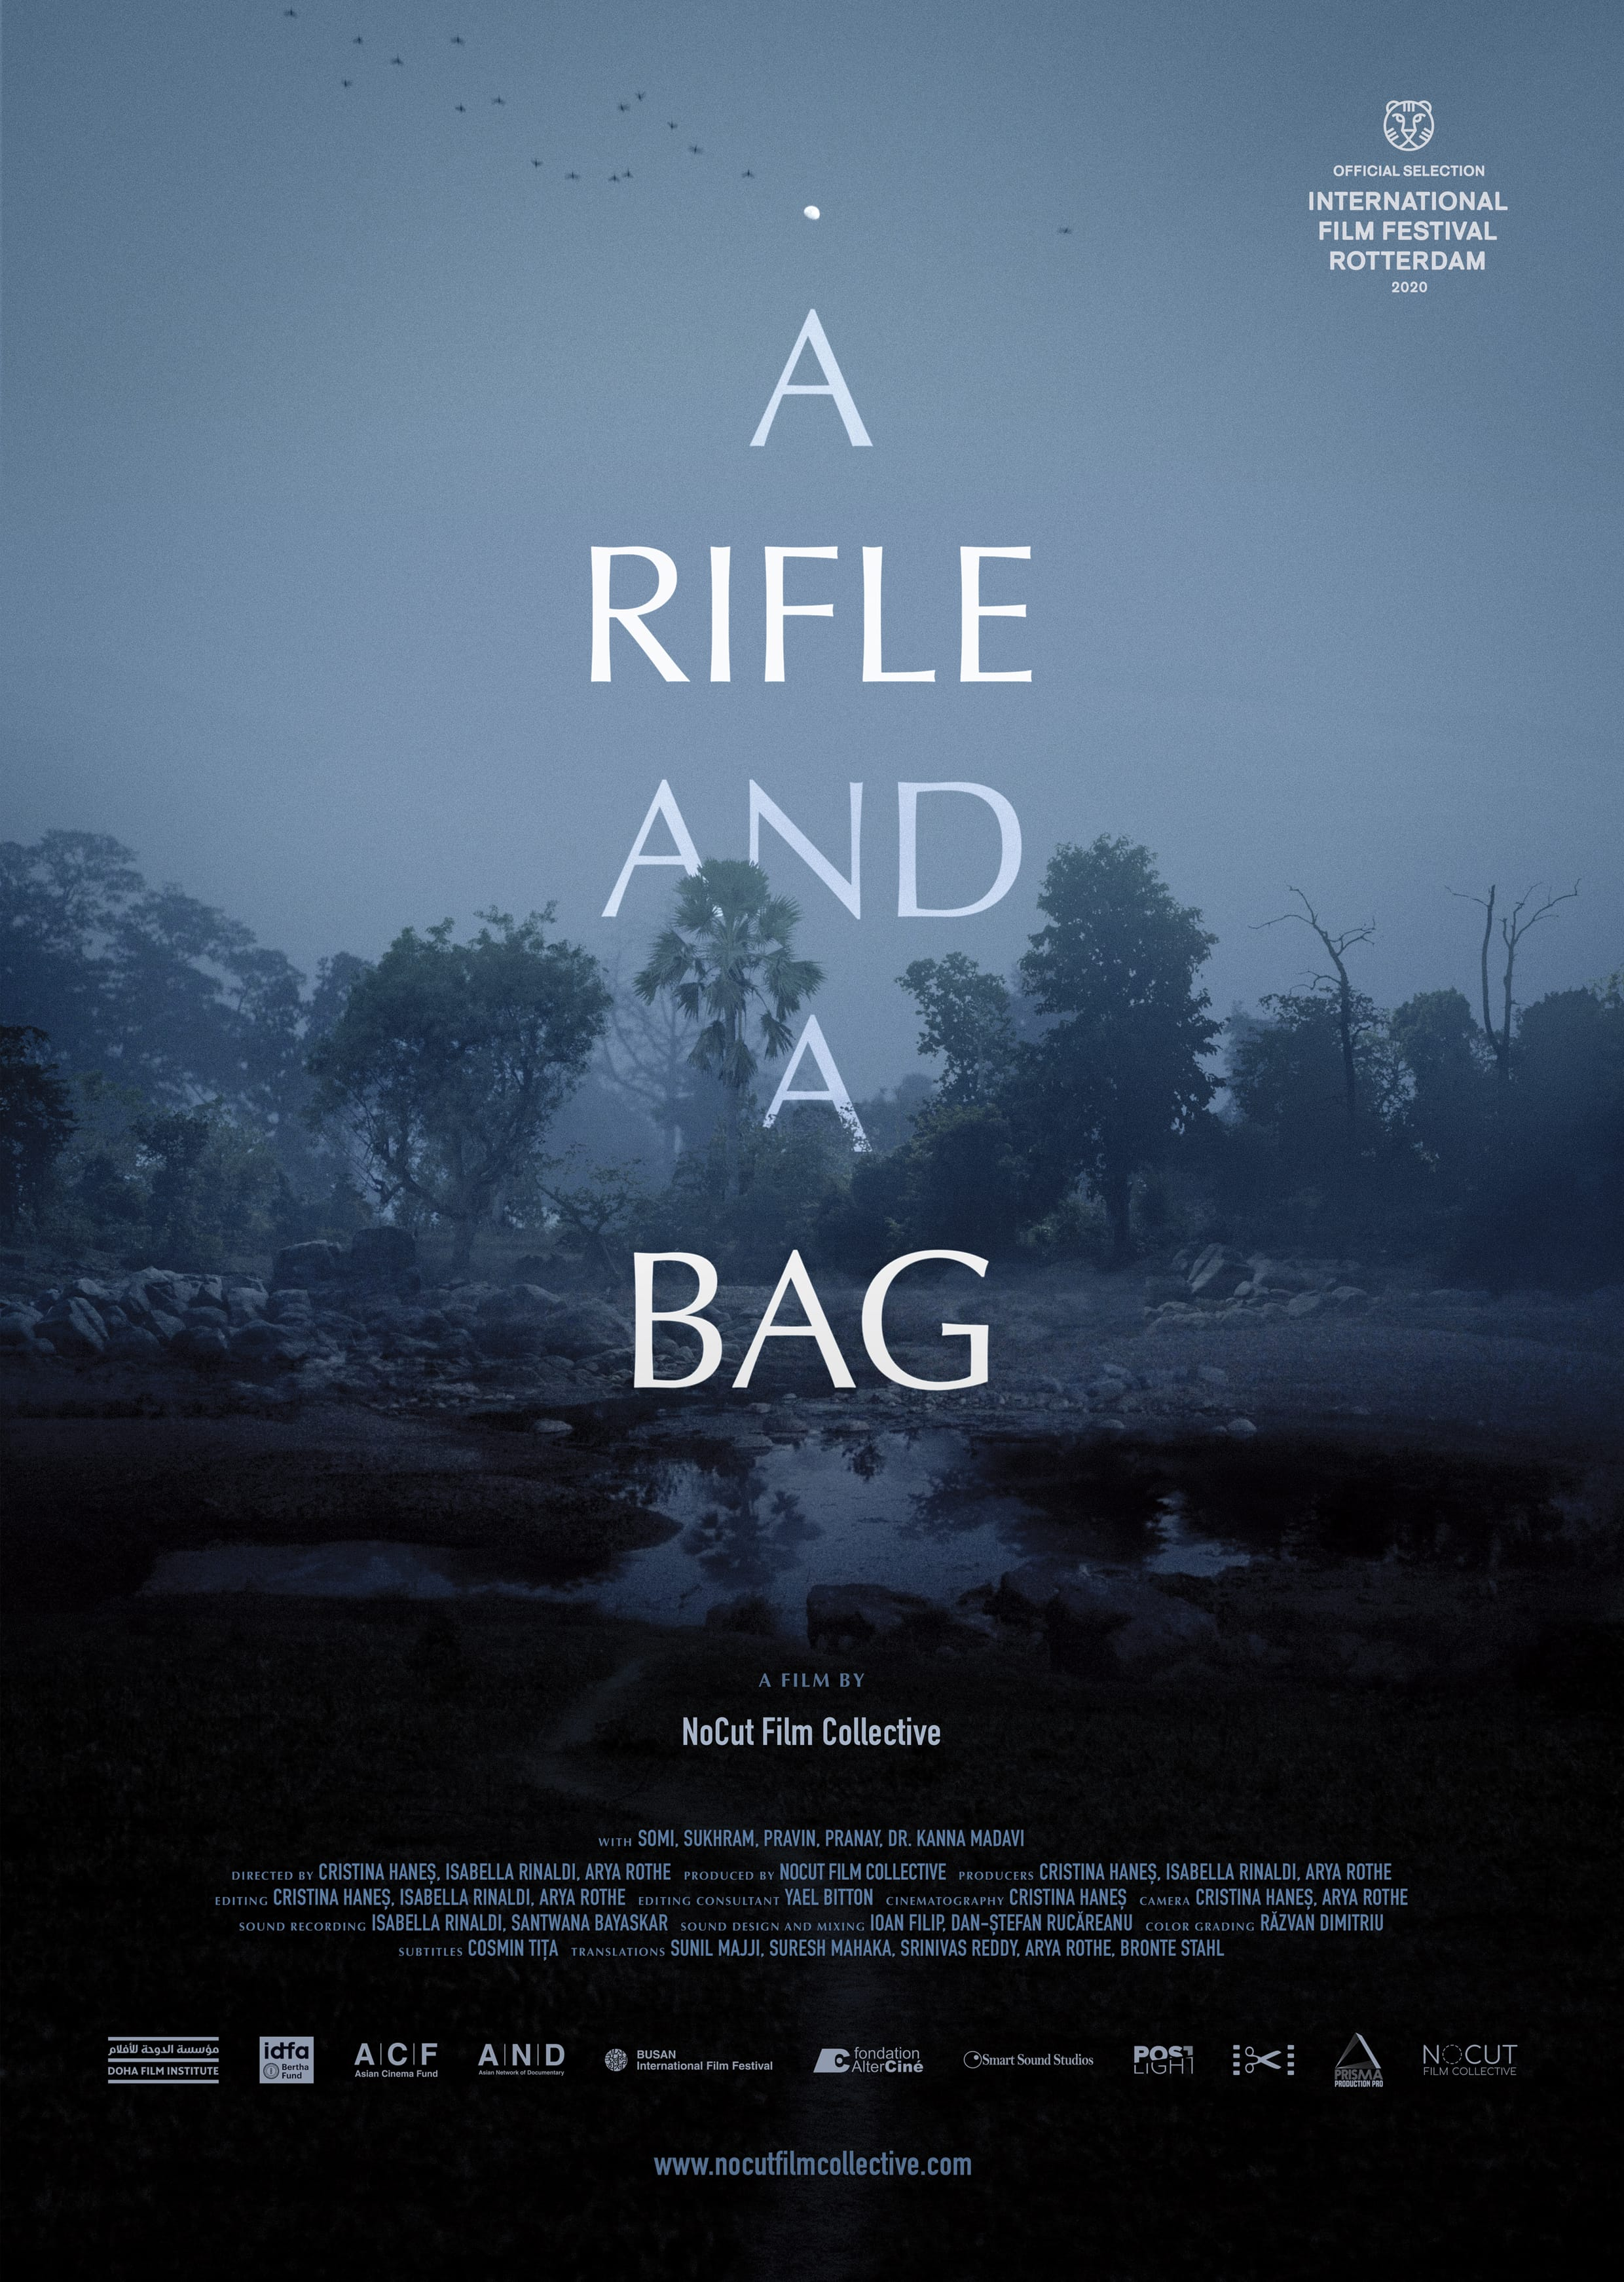 a rifle and a bag poster